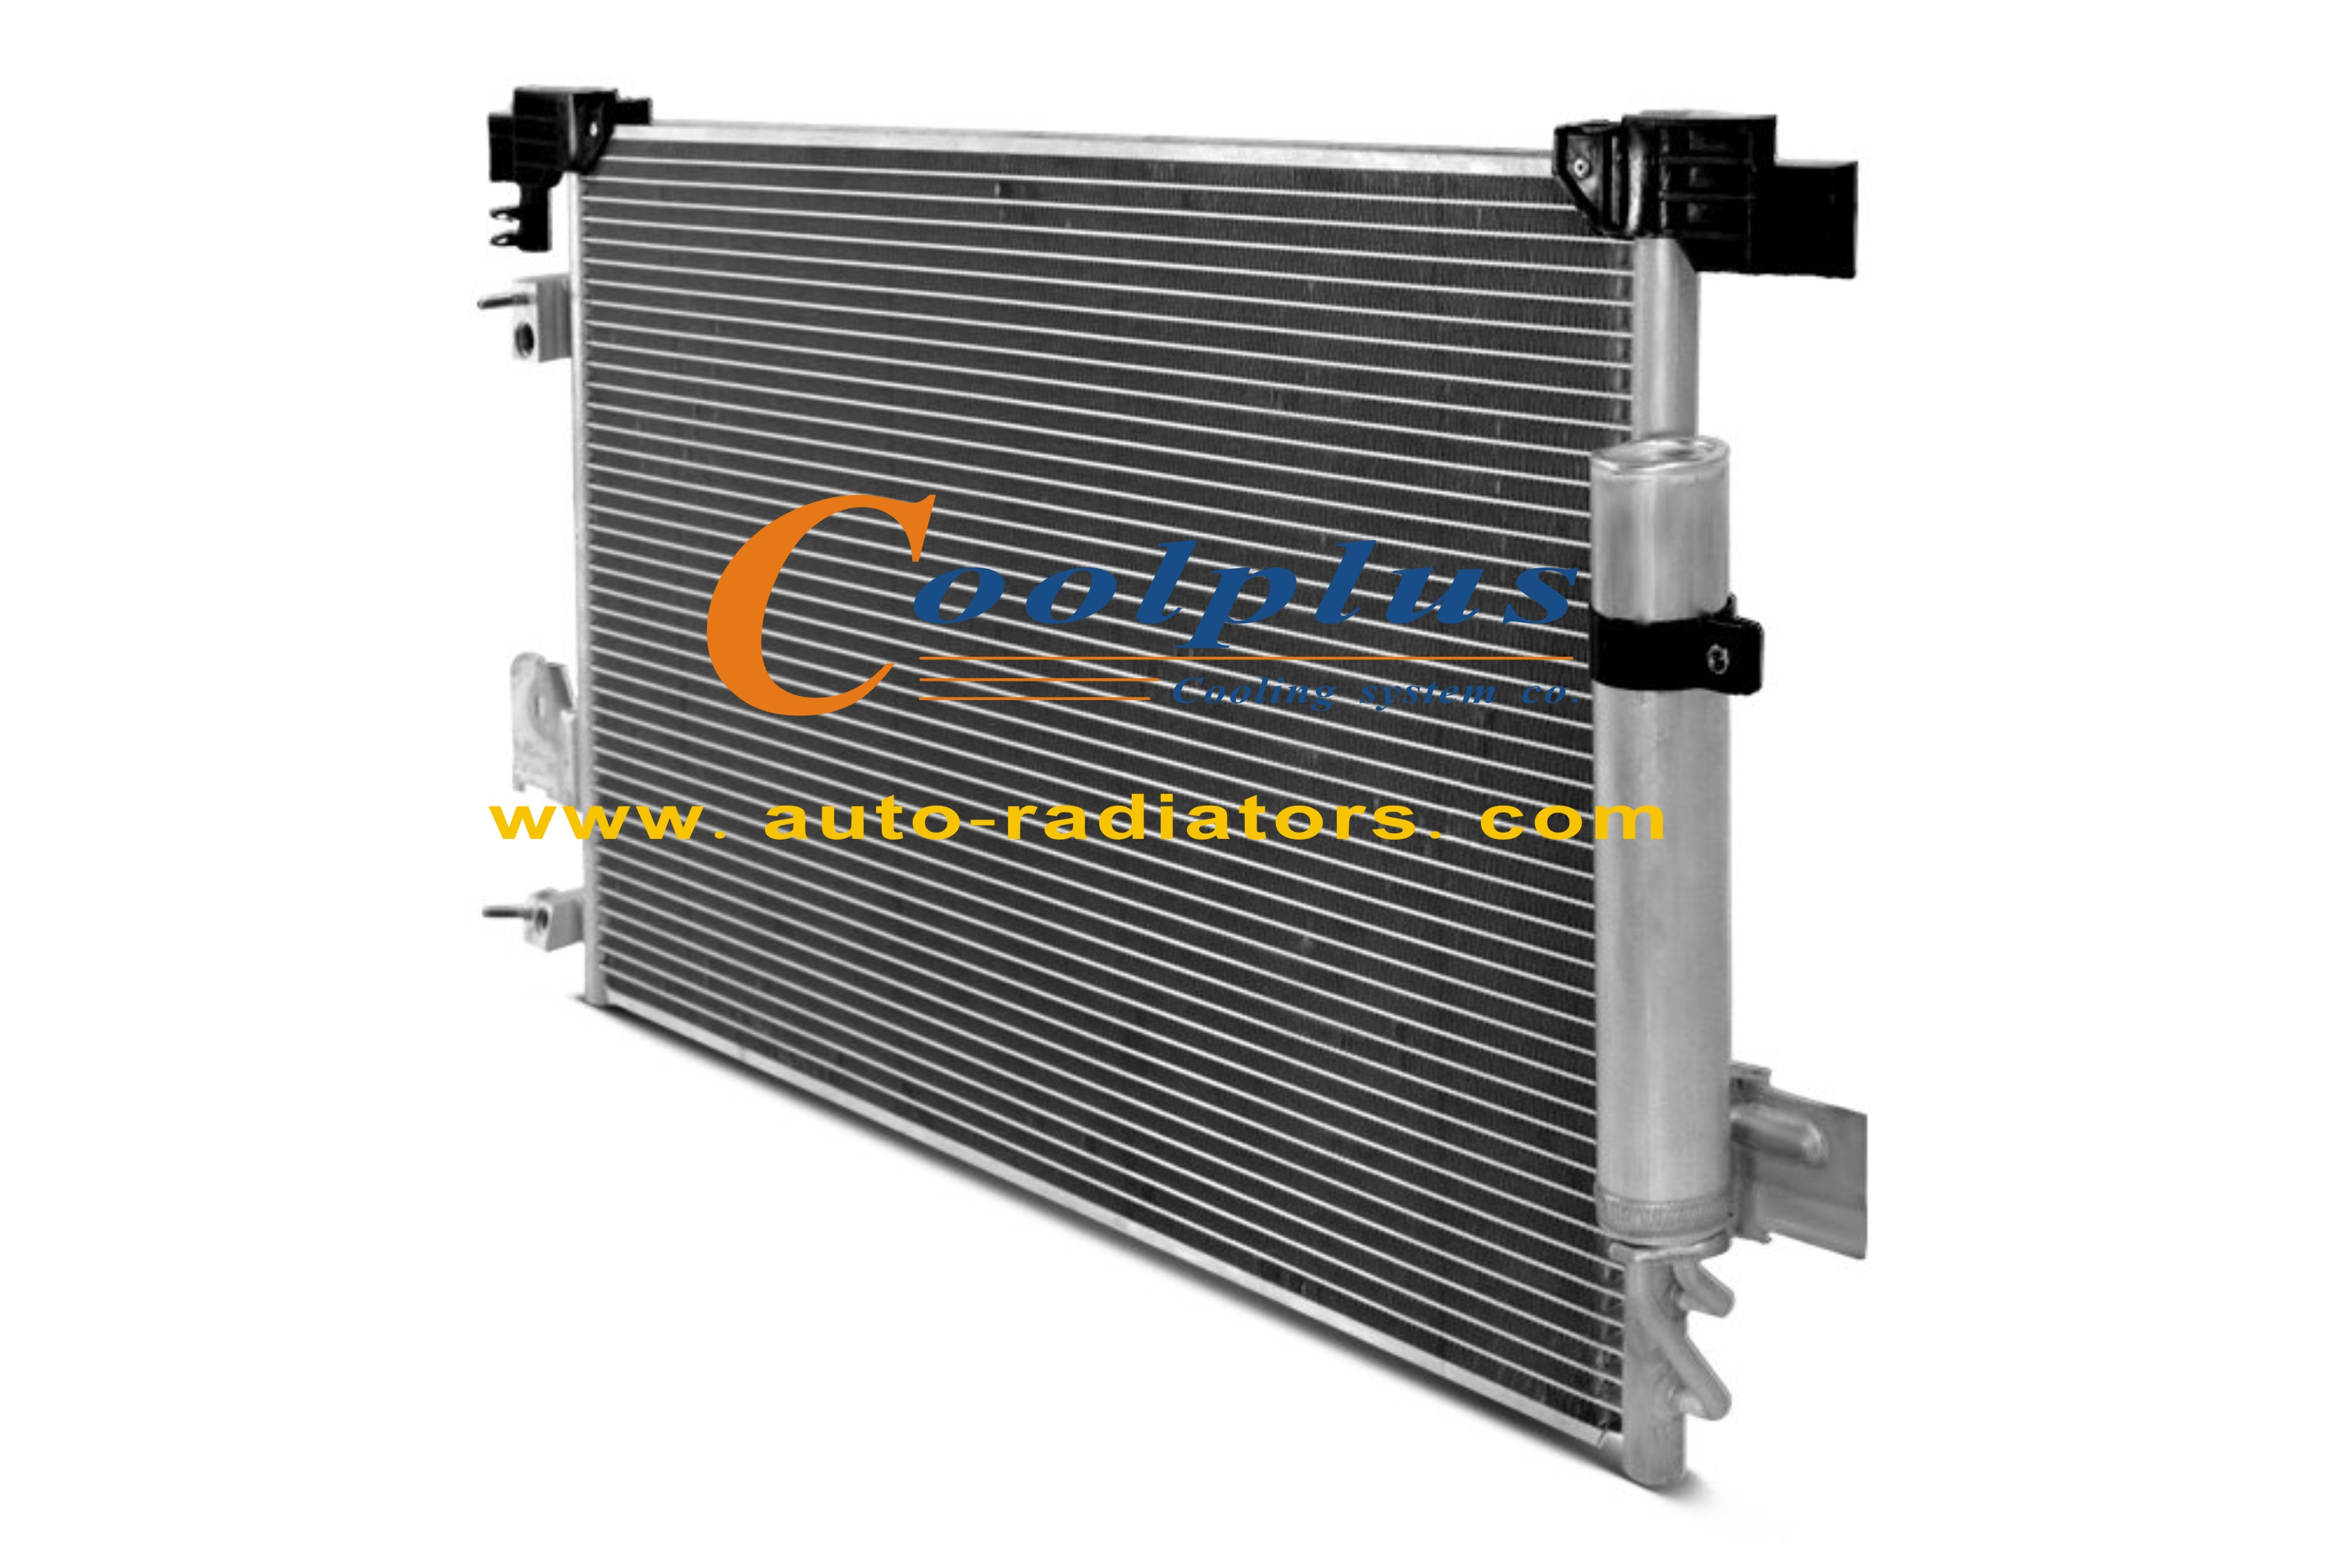 How To Install An Air Conditioner Condenser Auto Radiator